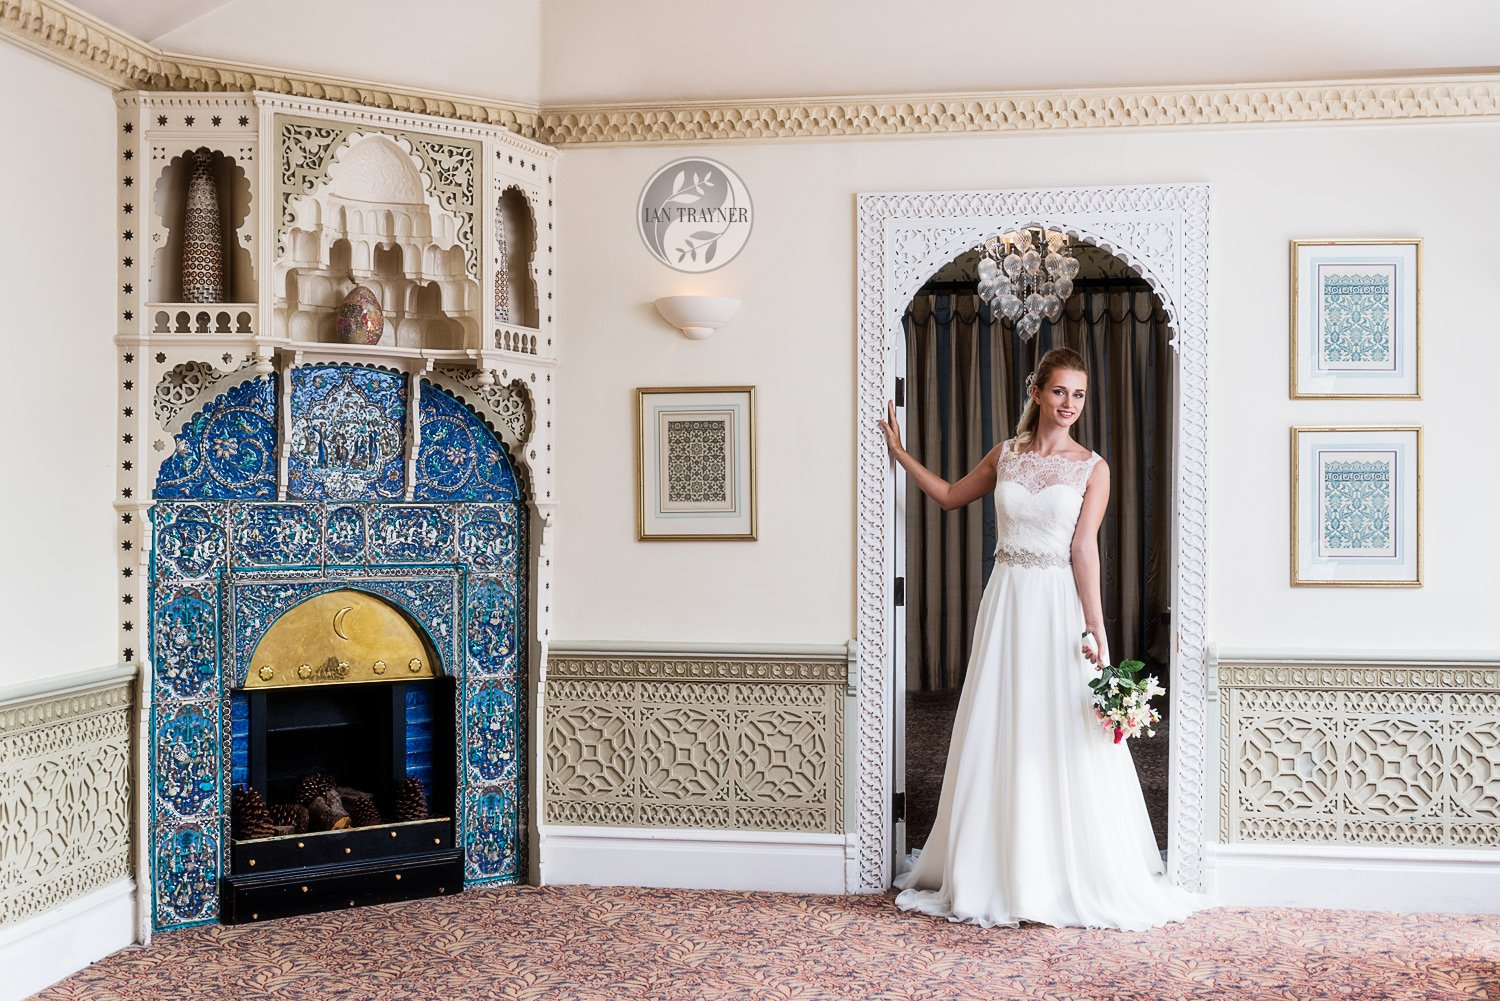 Location photo shoot for bridal gown designer Shamali. Bridal gown by Shamali. Photo taken by fashion photographer Ian Trayner.